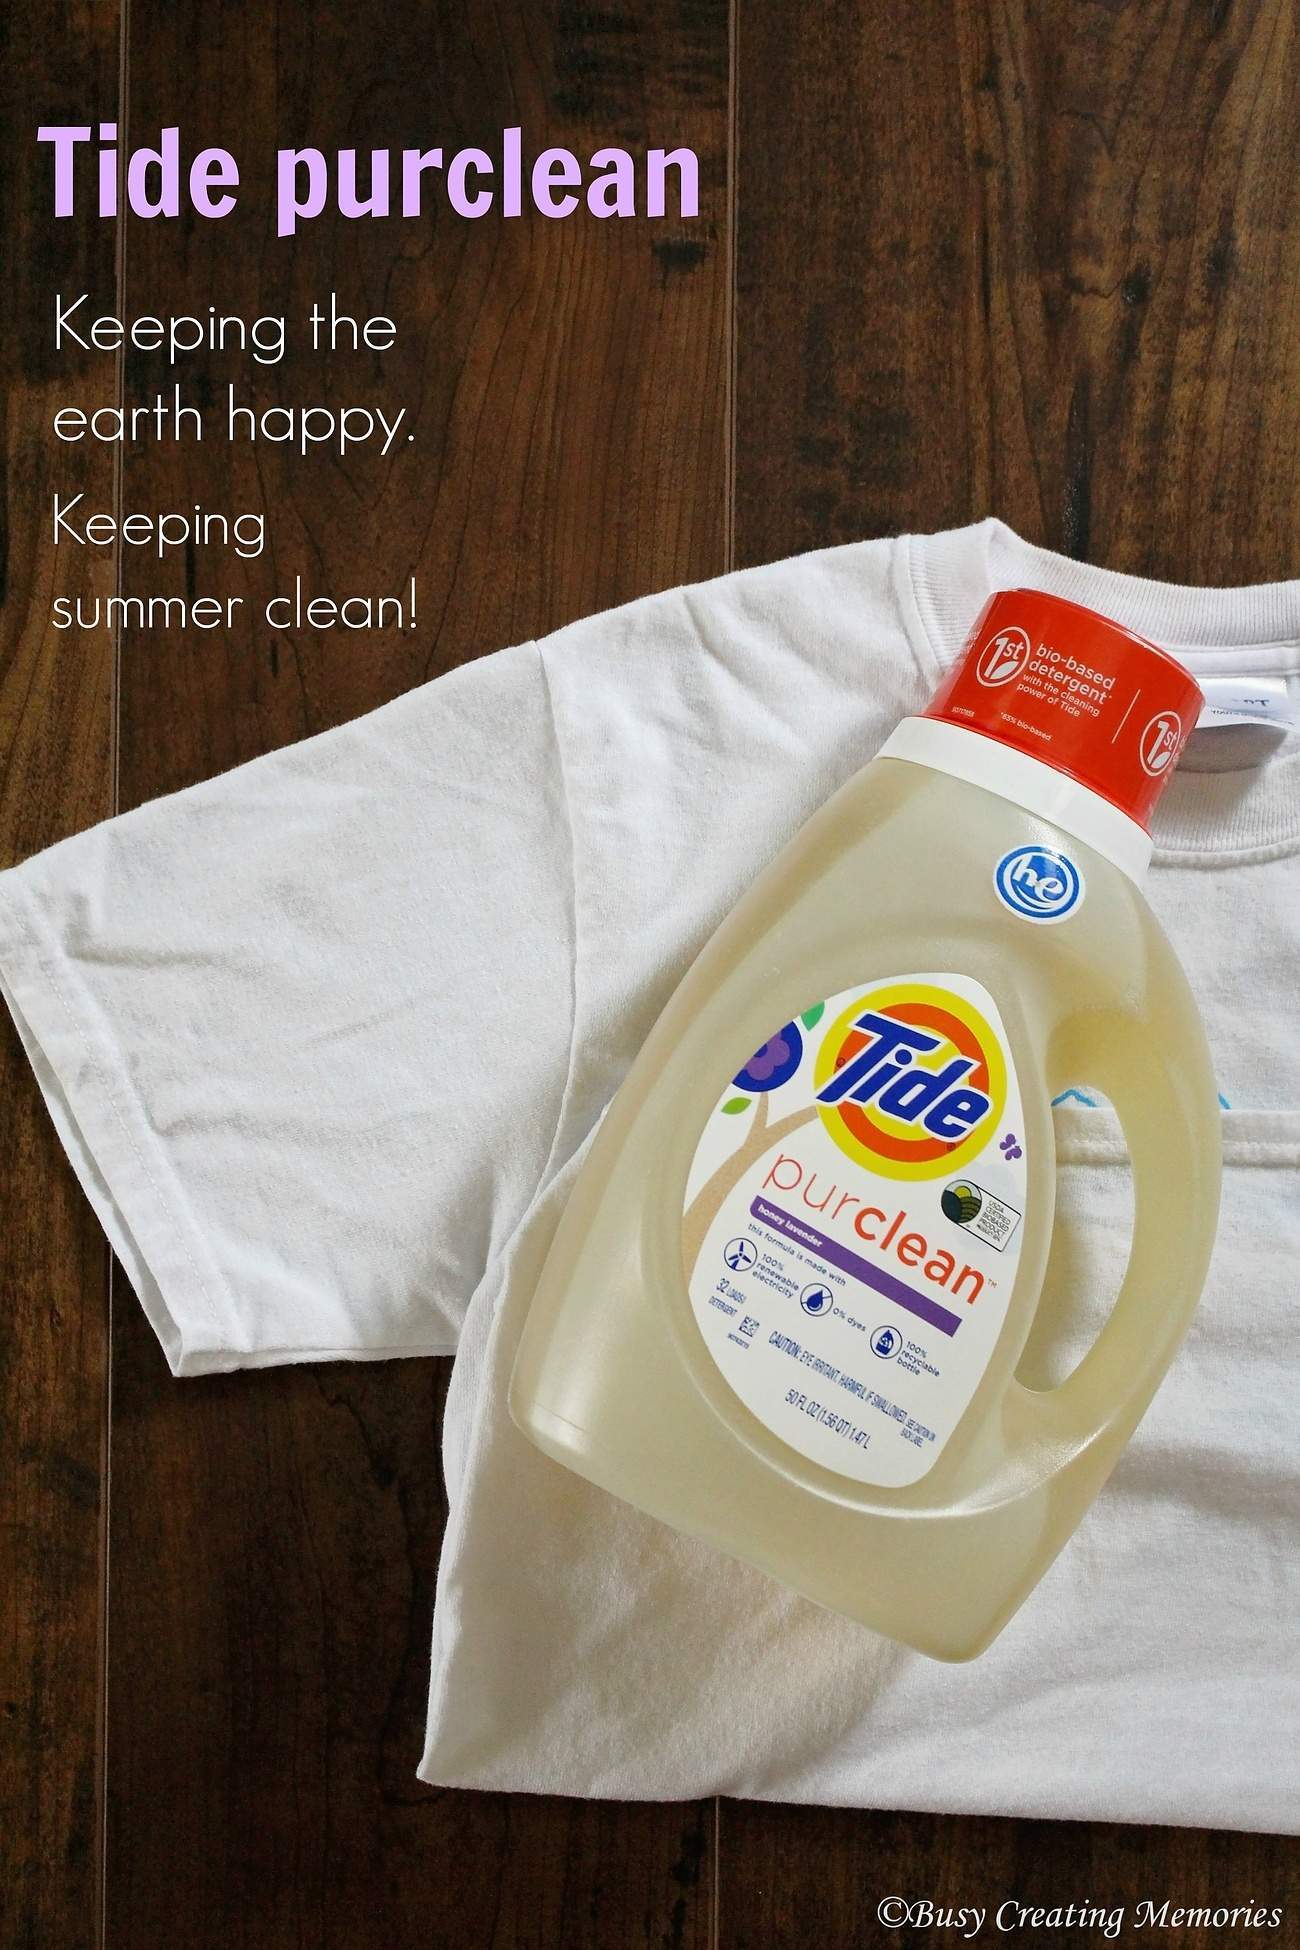 Tide pureclean keeps summer fun and clean!